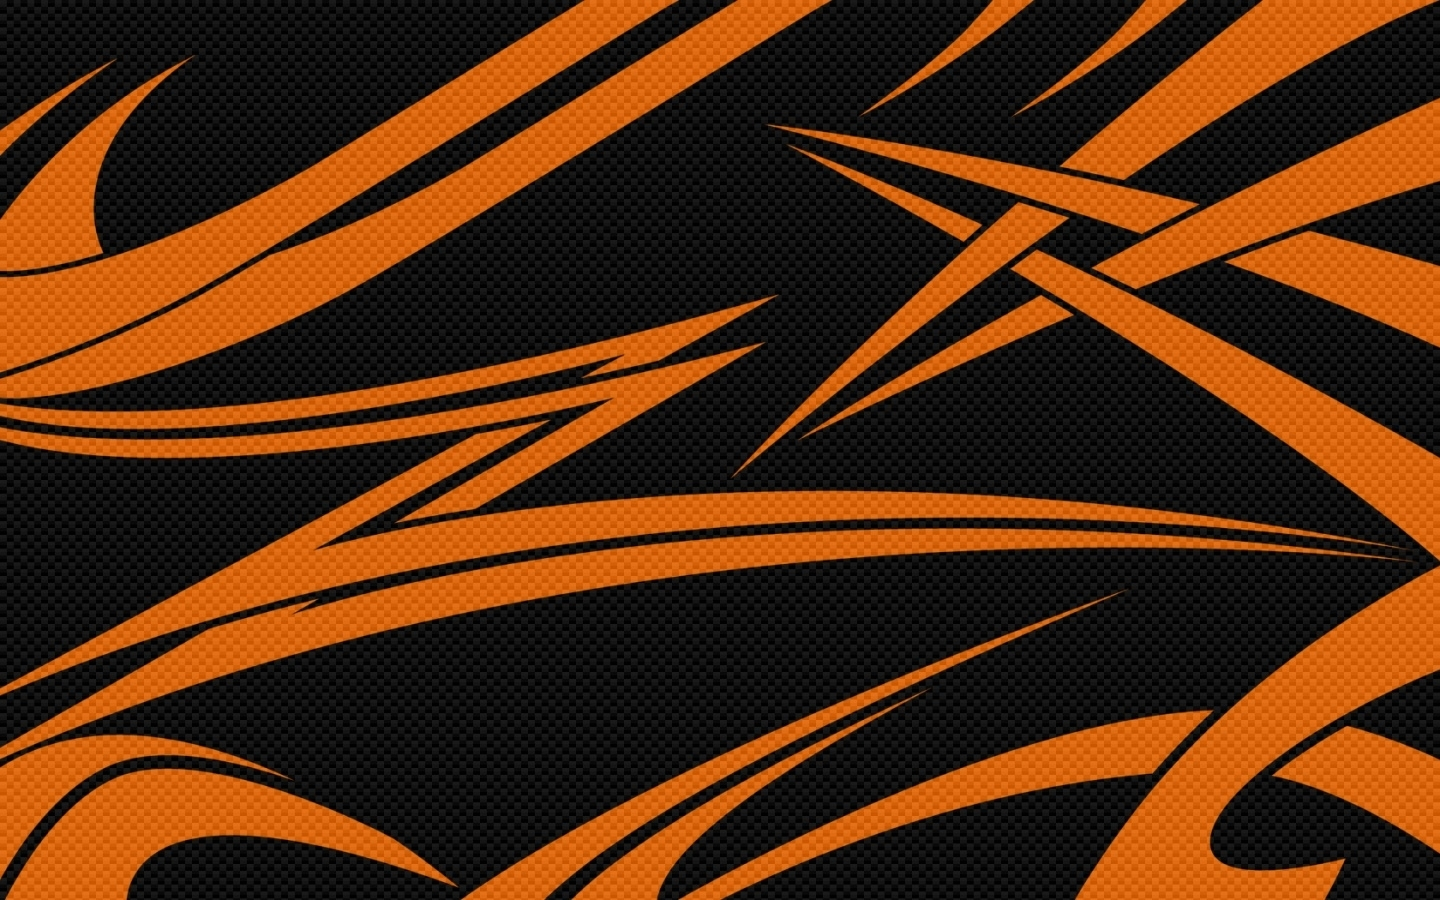 free black orange carbon backgrounds for powerpoint - abstract and